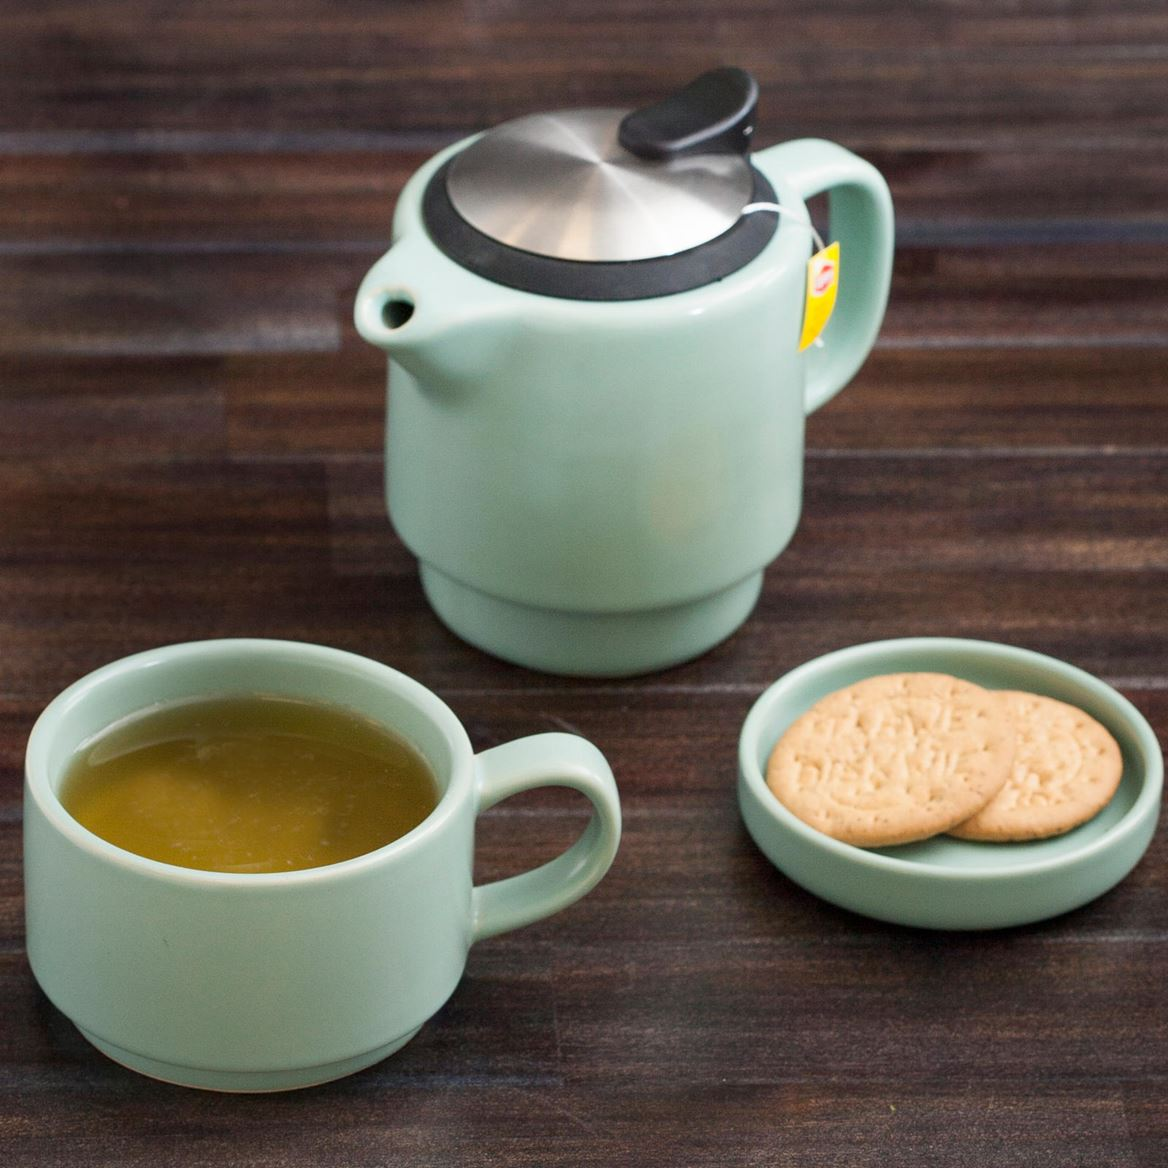 GUSTO Tea for one 4 pezzi menta_gusto-tea-for-one-4-pezzi-menta